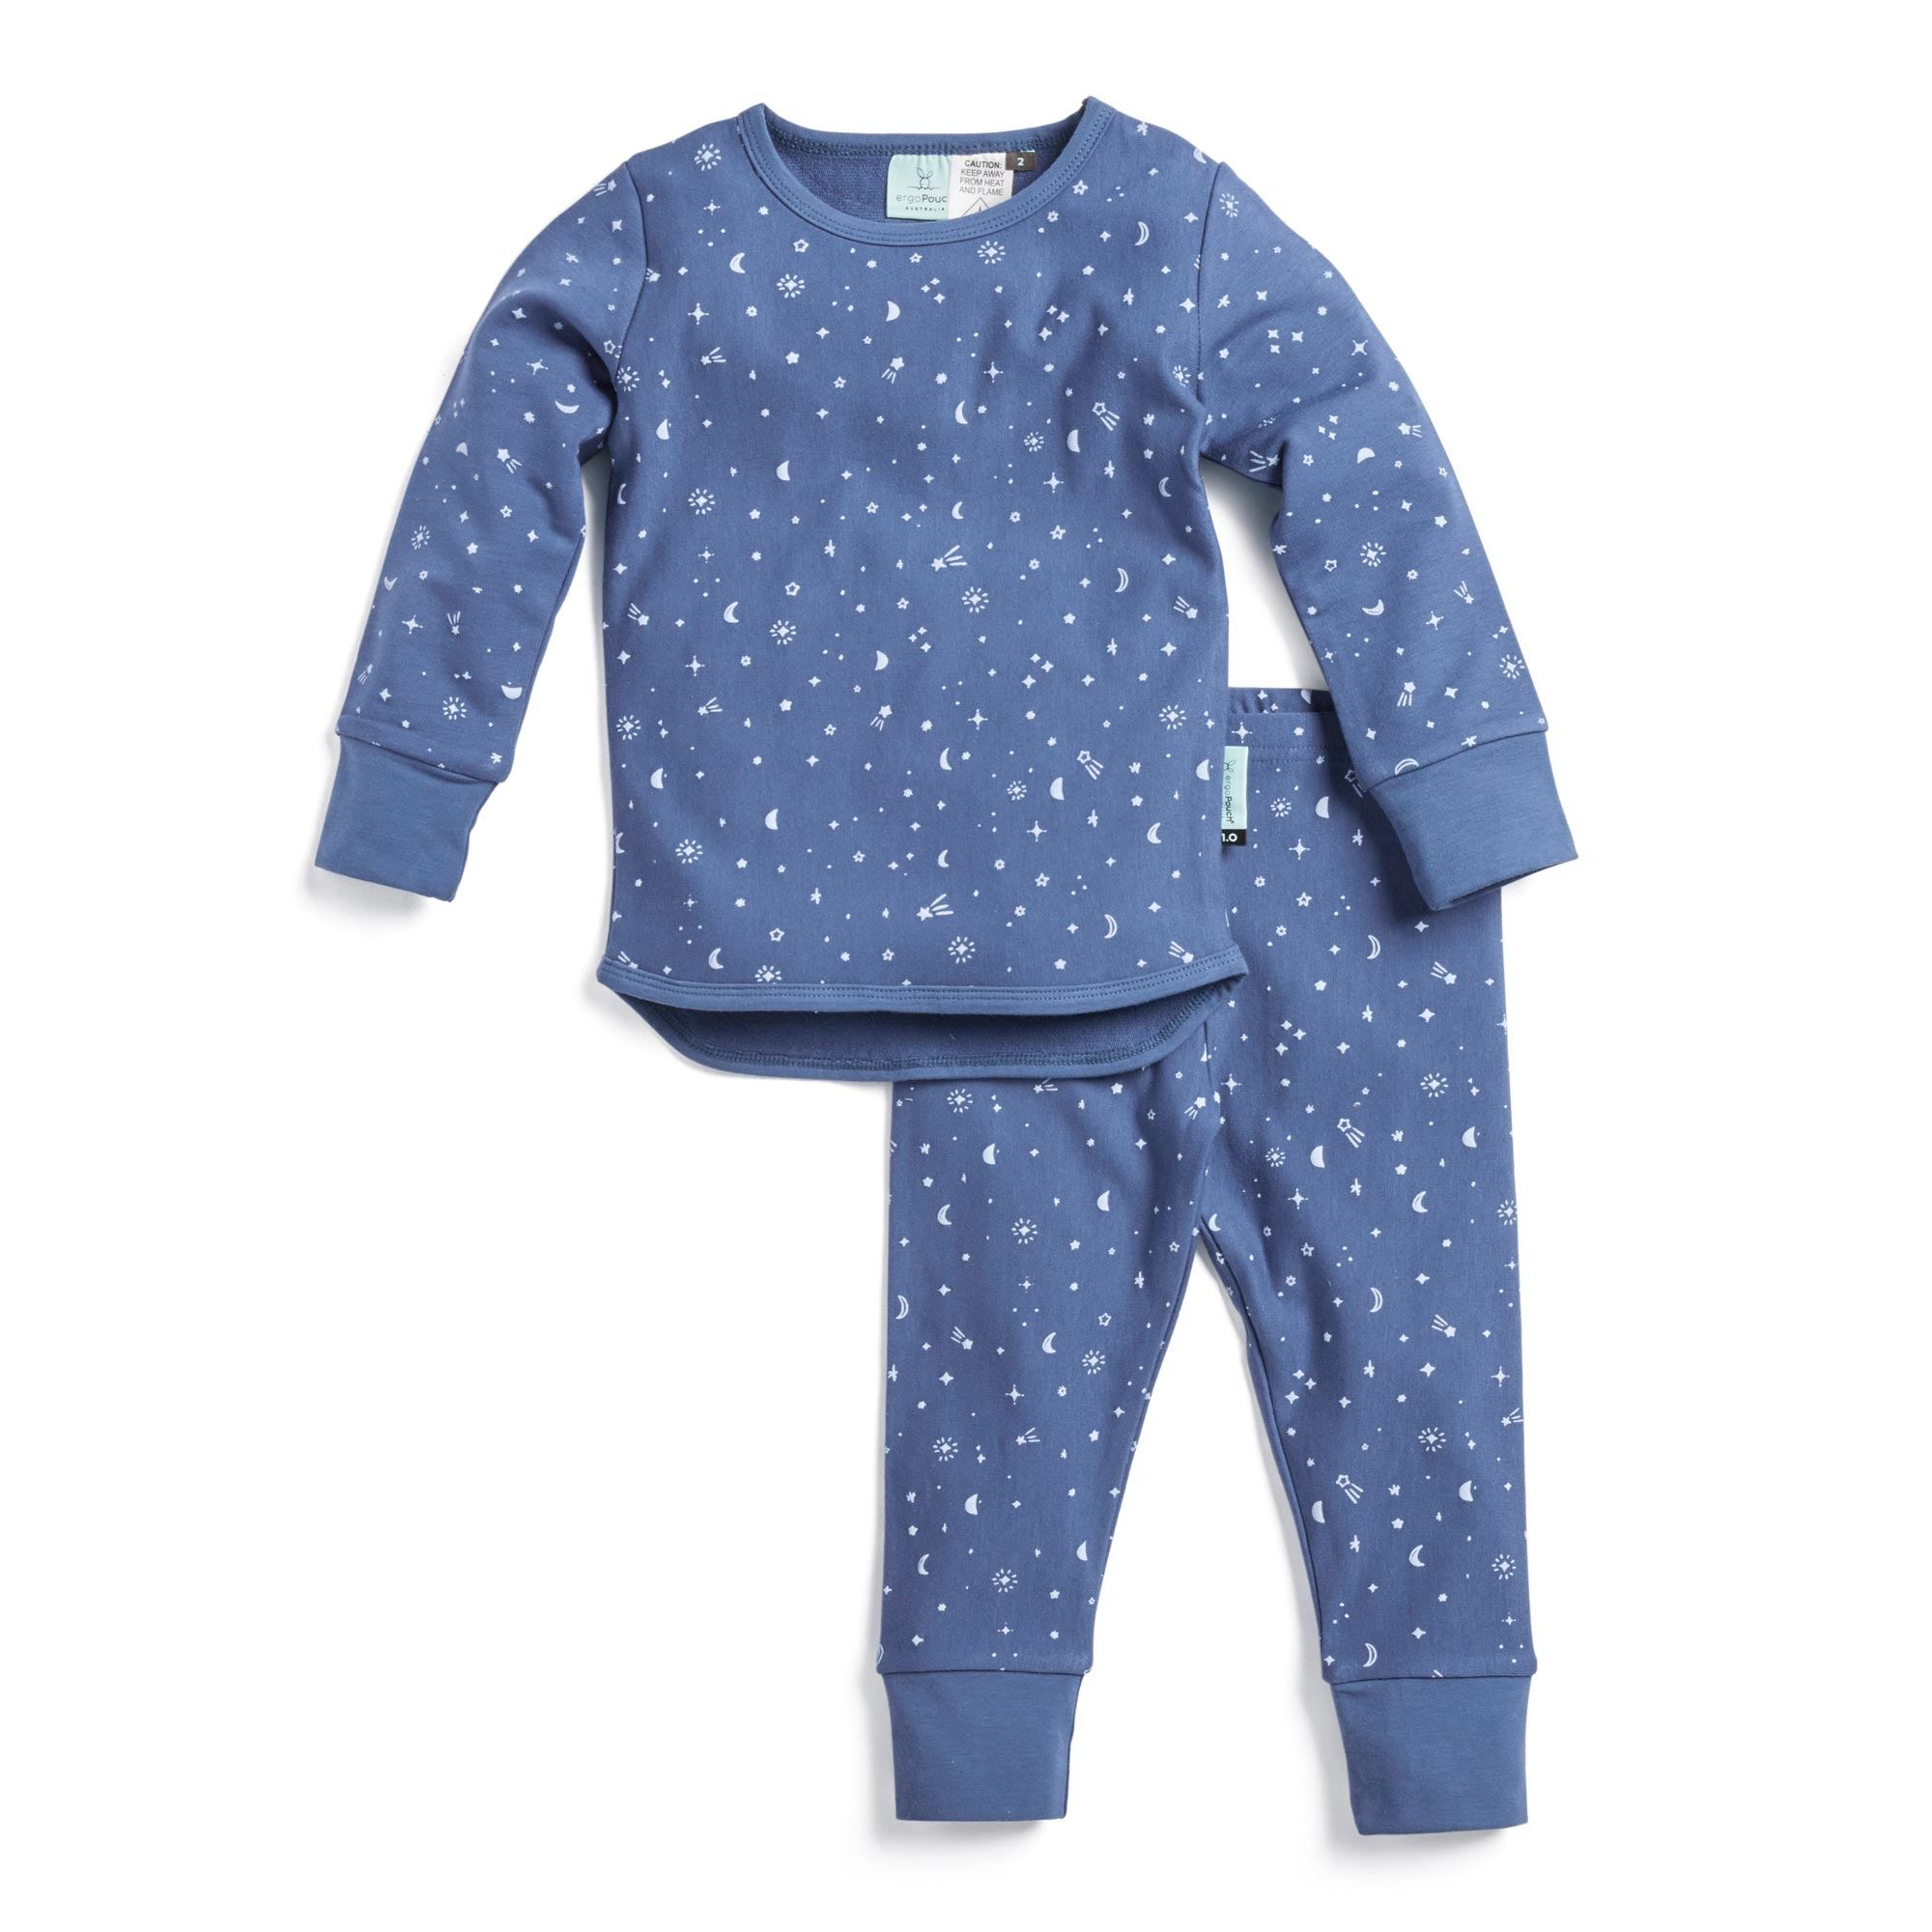 Pyjamas (Night Sky)